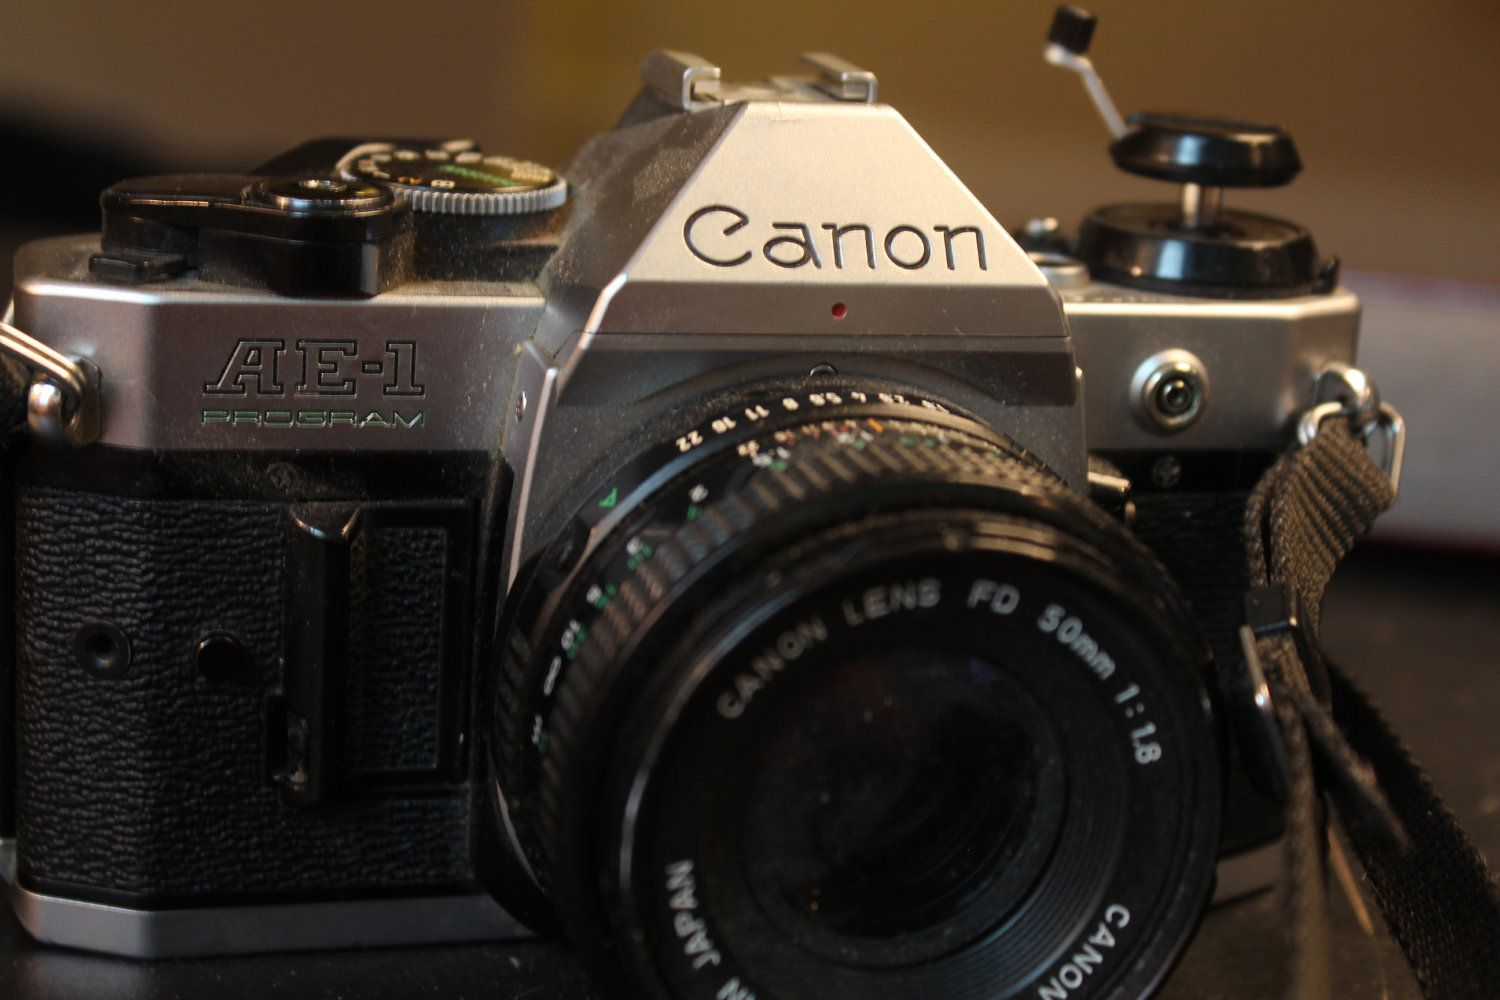 Yearbook clipart canon camera. Vintage mm film ae